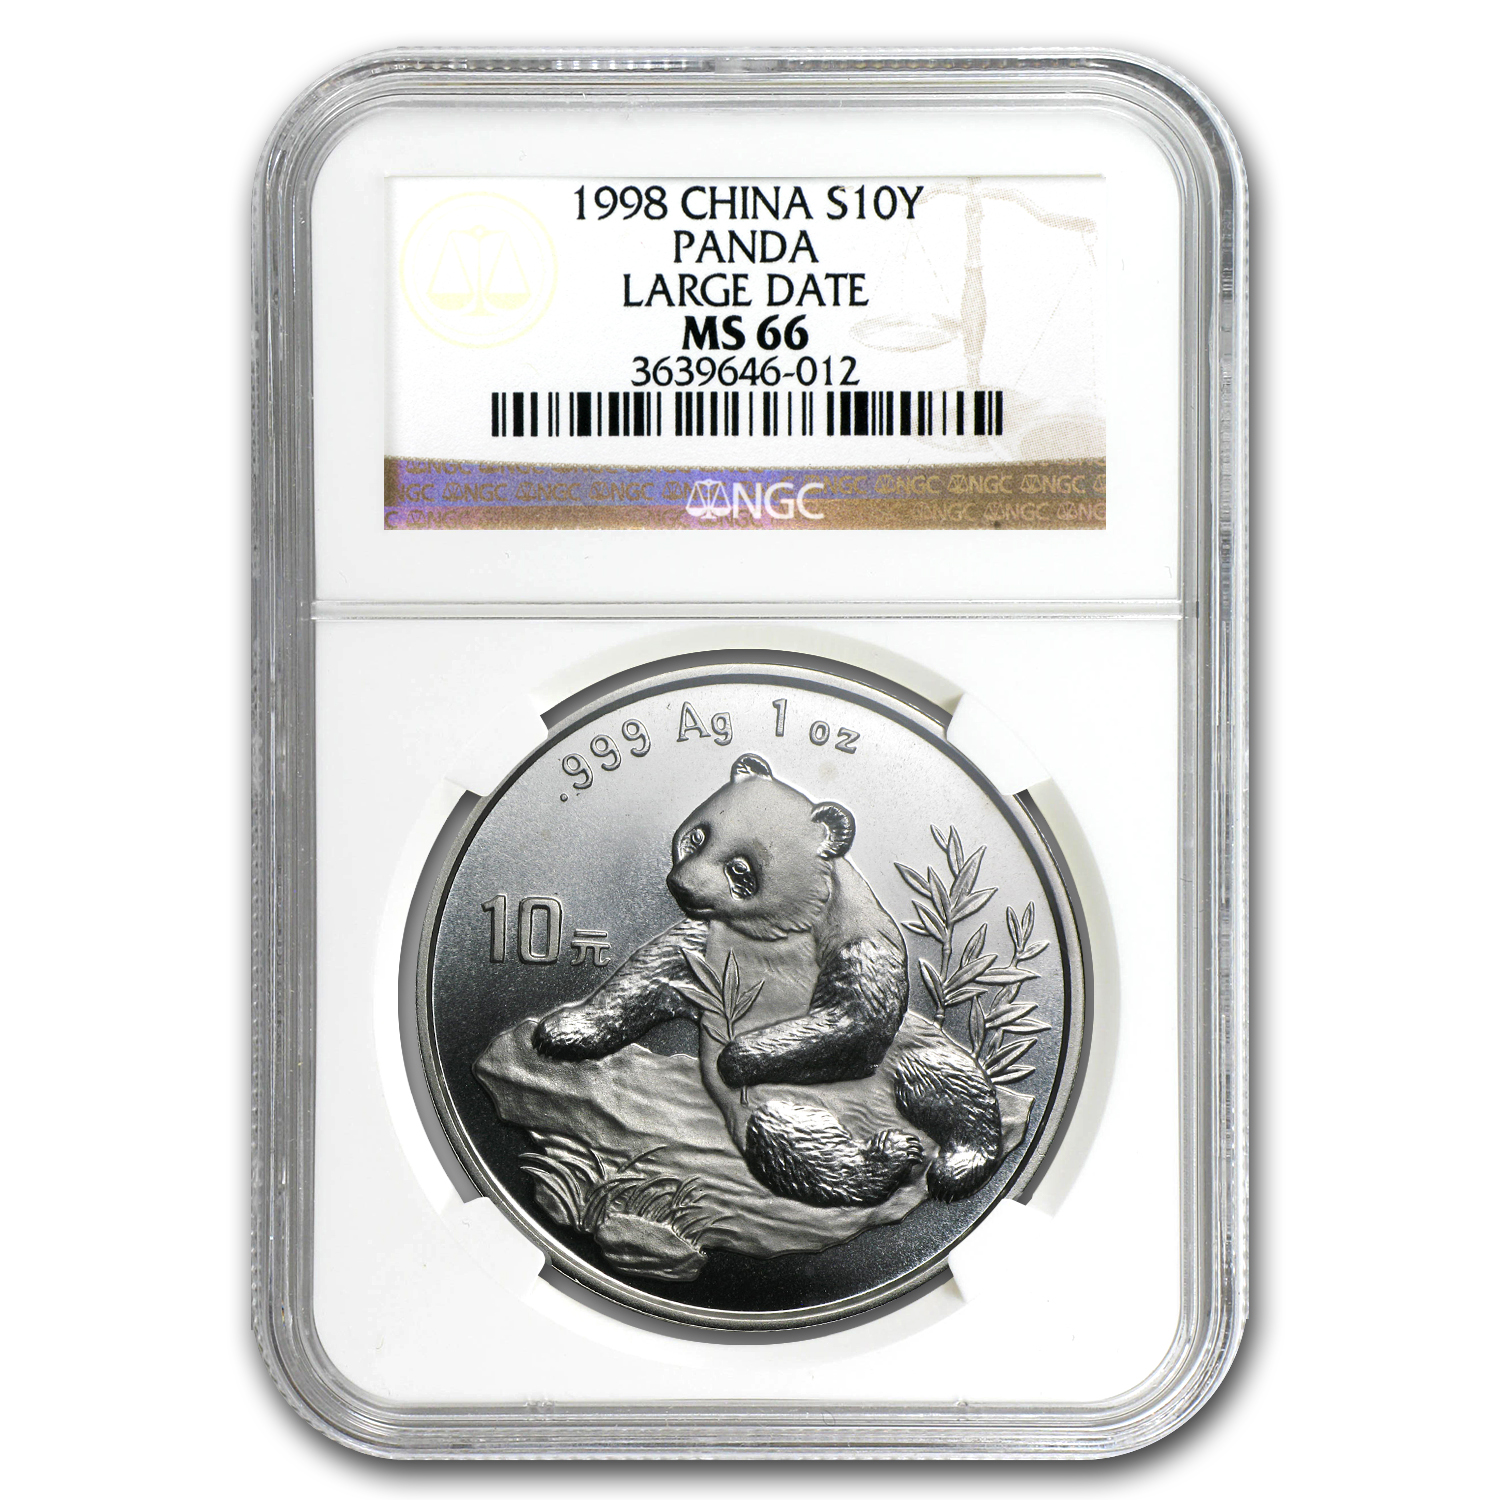 1998 Silver Chinese Pandas 1 oz - MS-66 NGC - Large Date